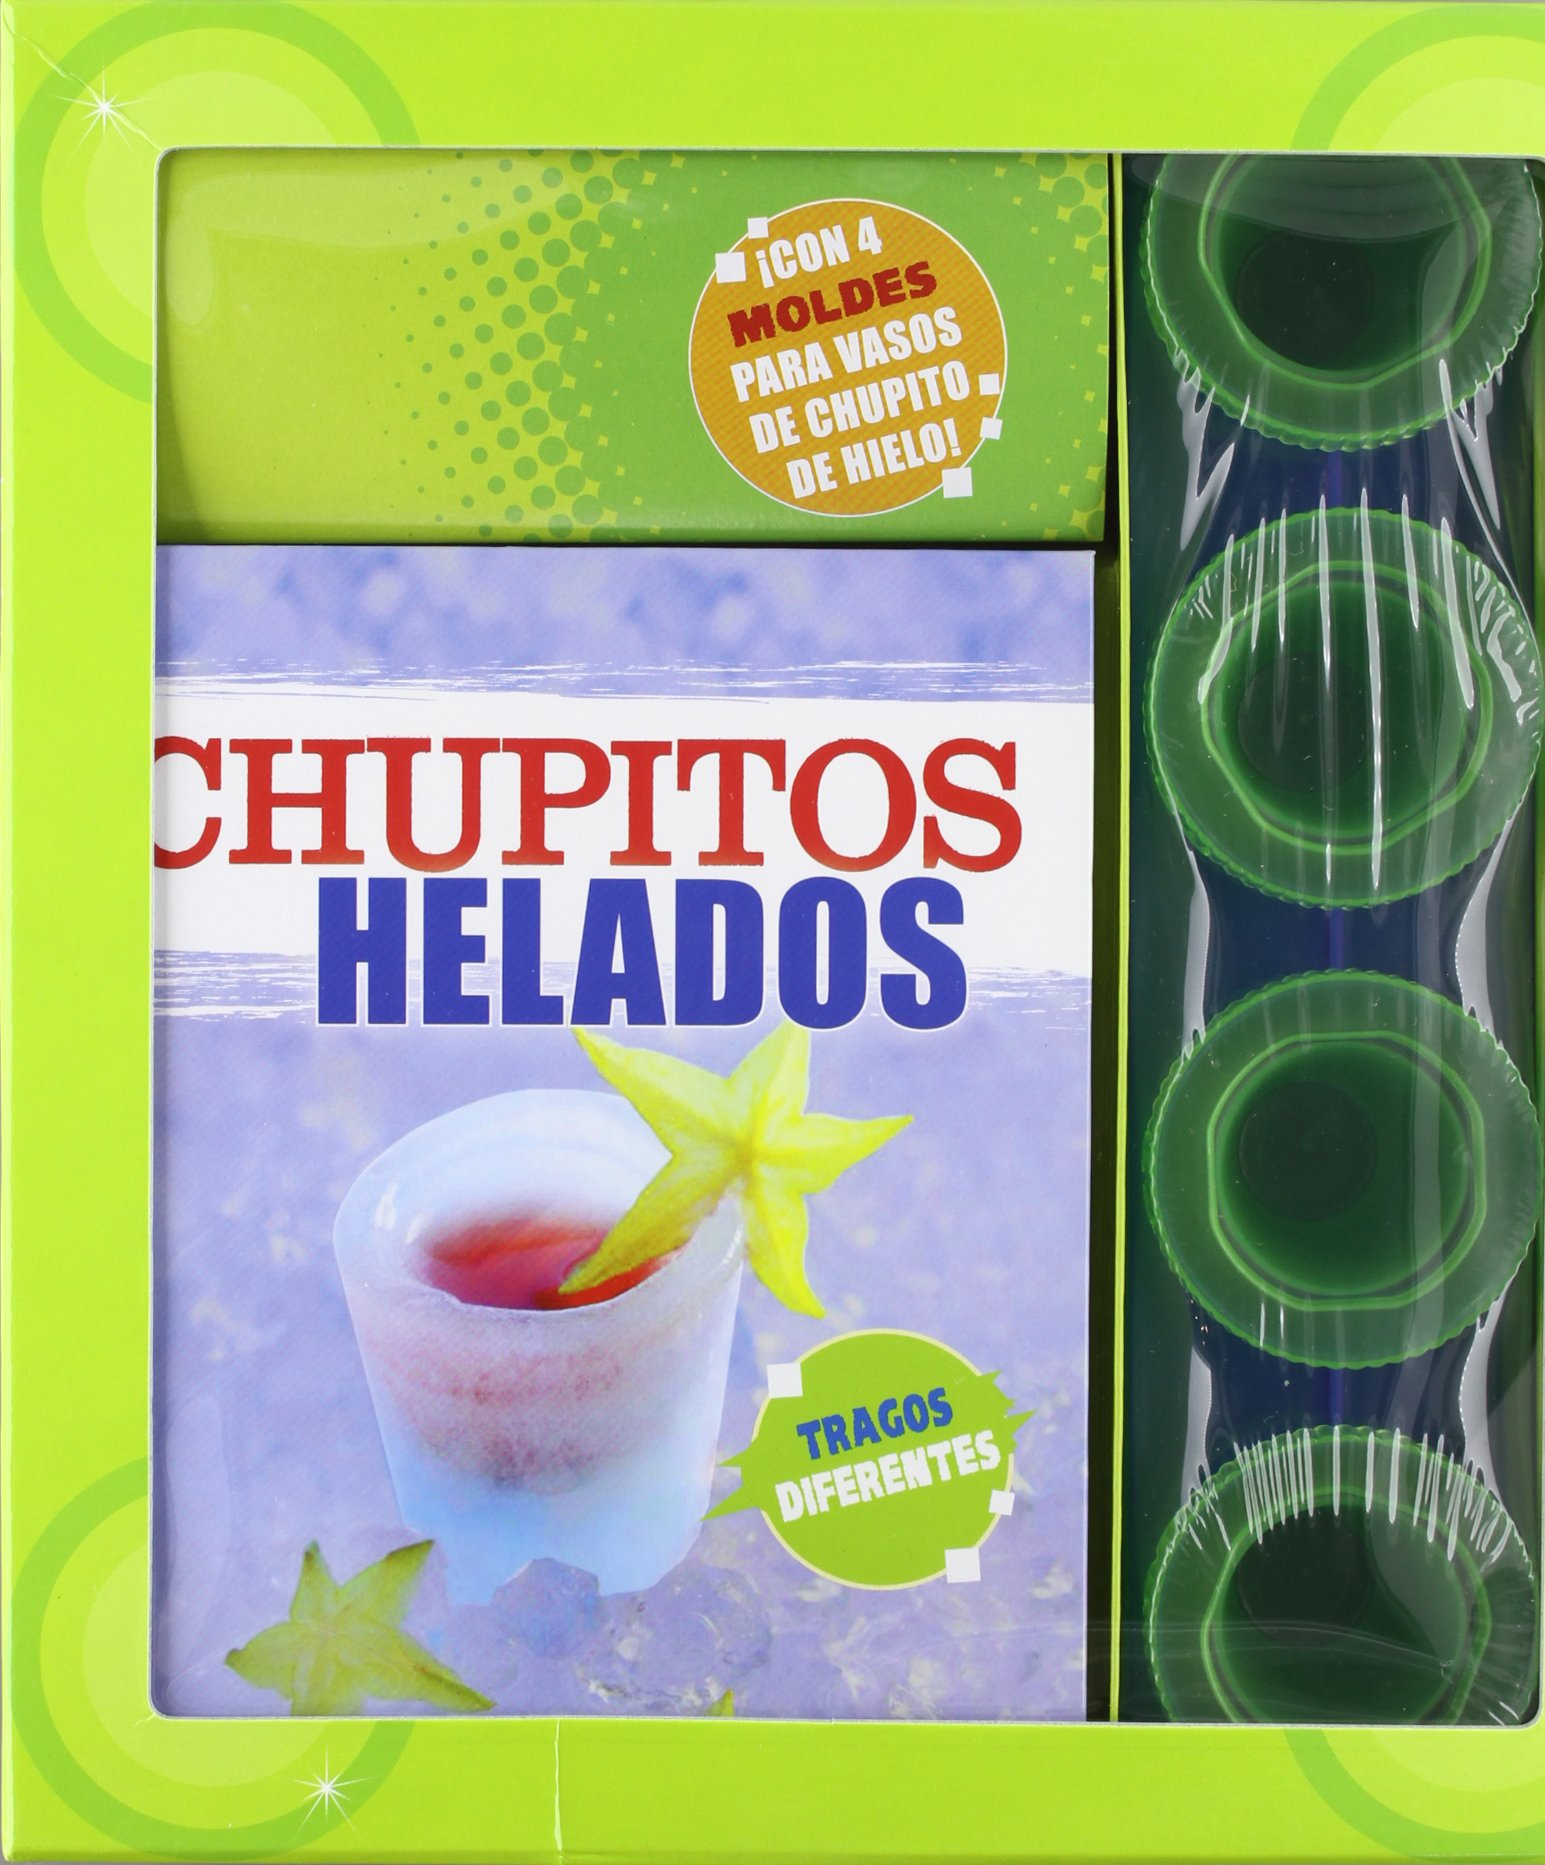 CHUPITOS HELADOS SET DE MOLDES - NGV: VARIOS(600105): 9783771600105: Amazon.com: Books